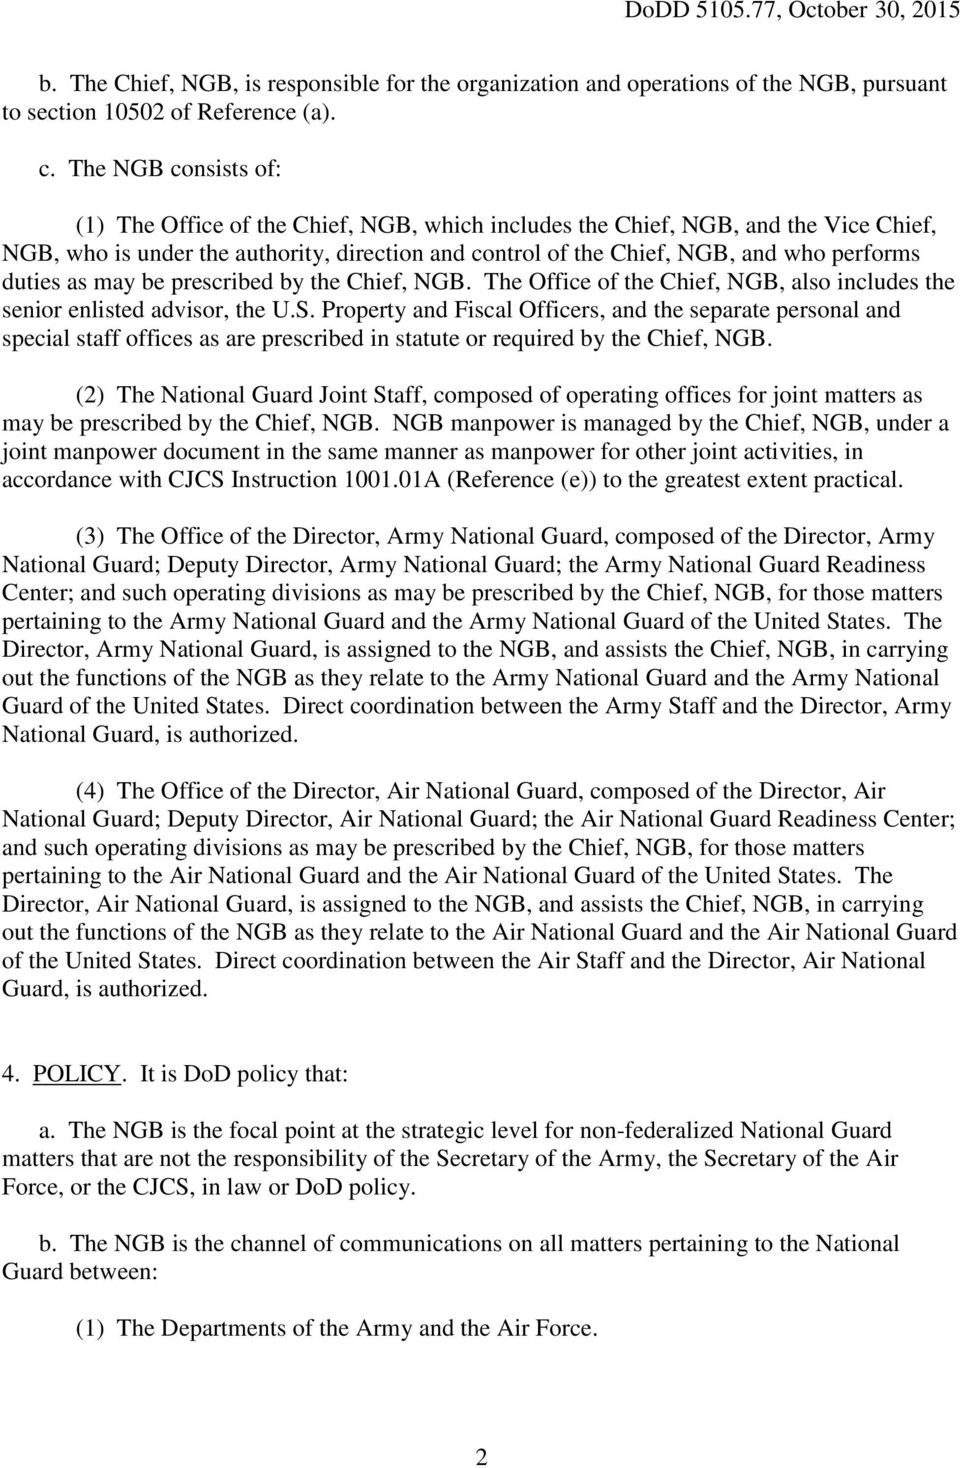 duties as may be prescribed by the Chief, NGB. The Office of the Chief, NGB, also includes the senior enlisted advisor, the U.S.